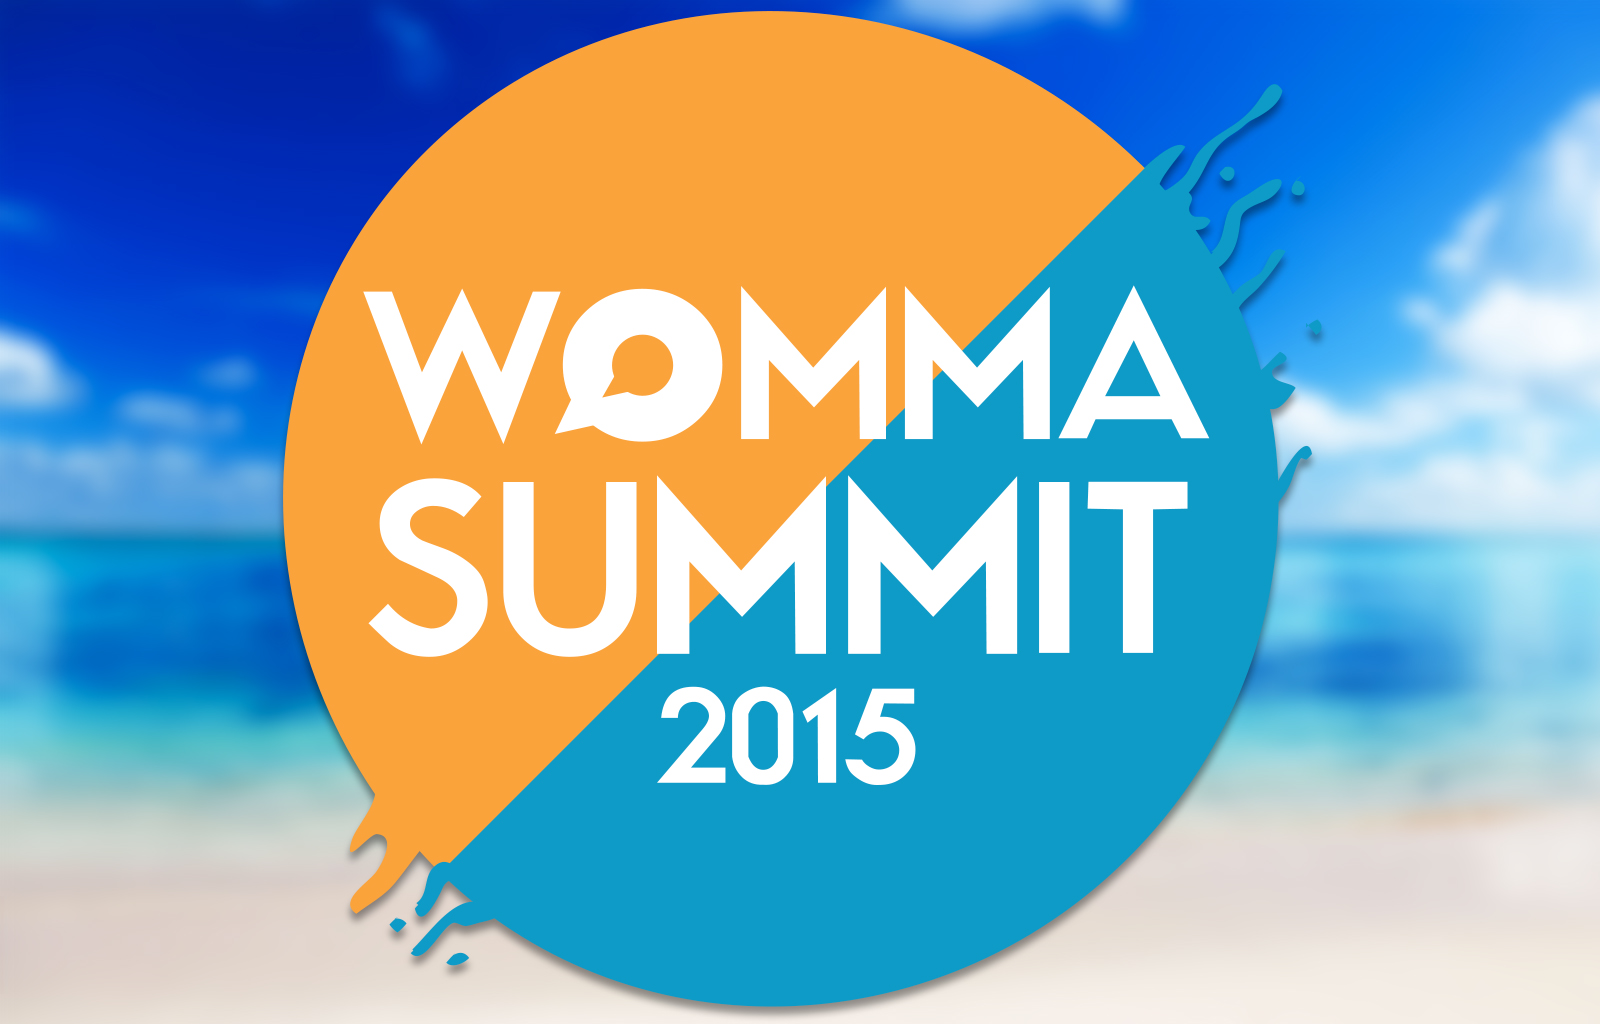 WOMMA SUMMIT